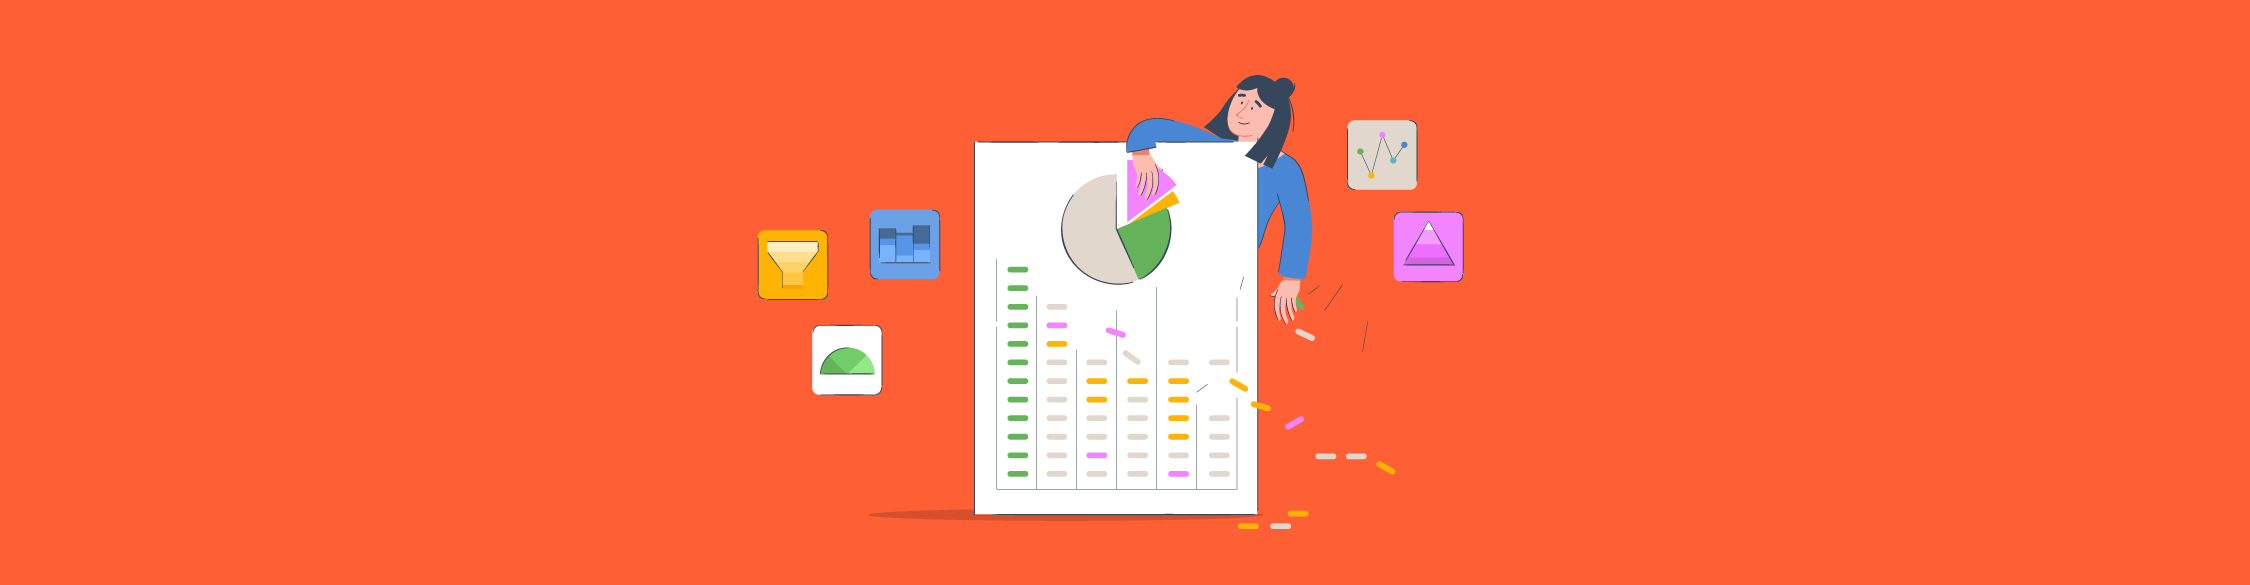 32 Data Visualization Types: Choose the One You Need